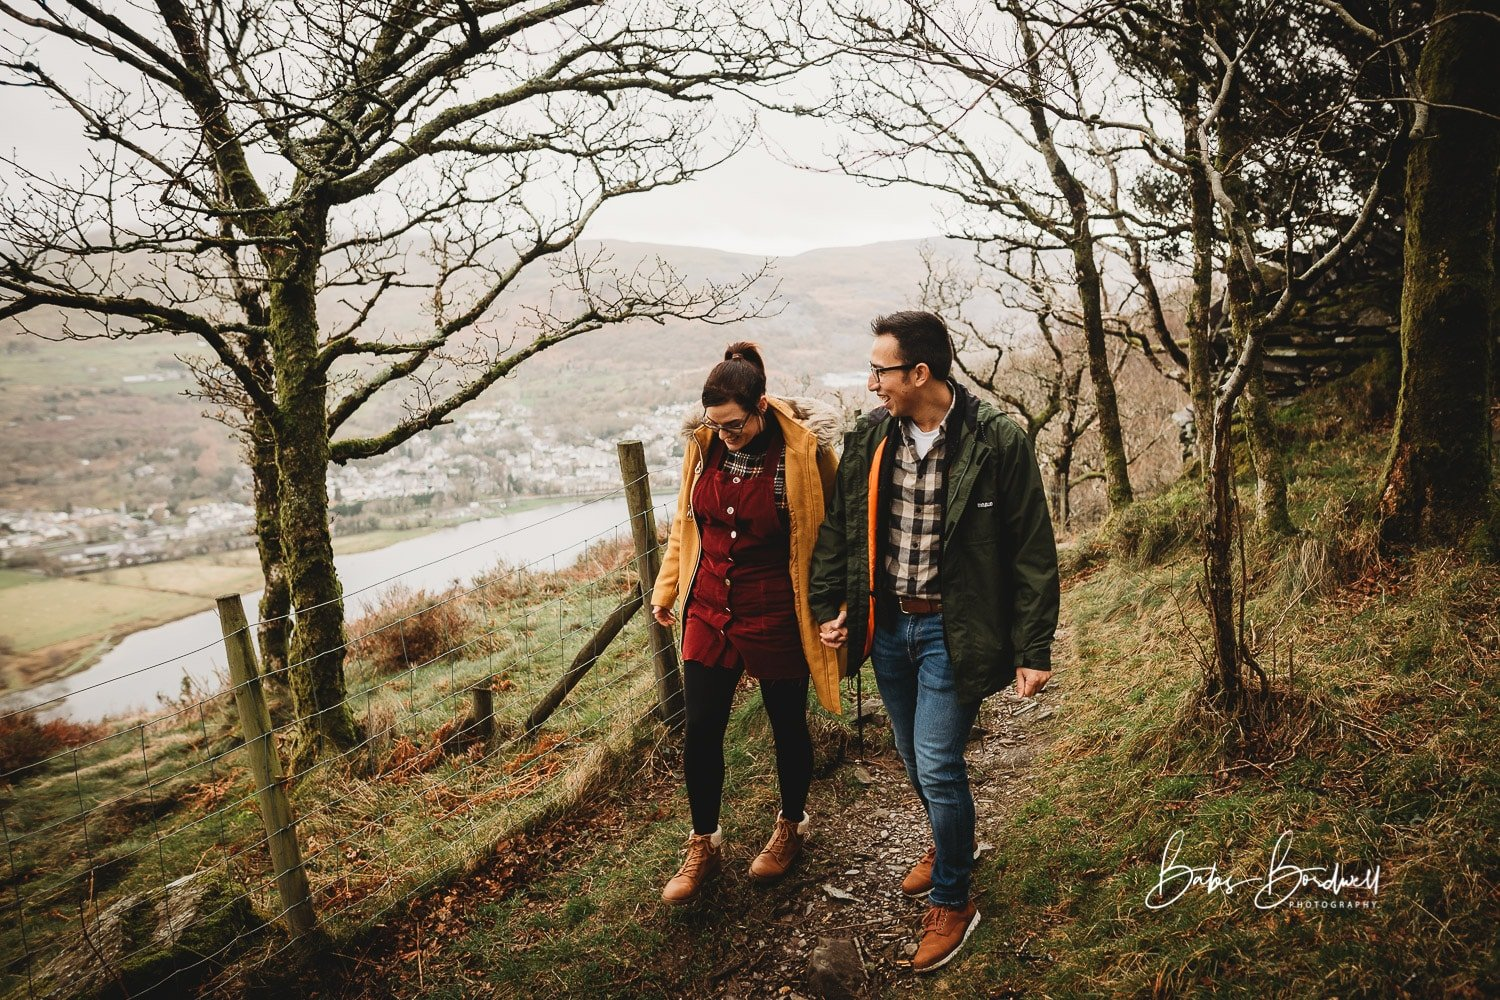 engaged couple smiling walking on forest path above Llanberis